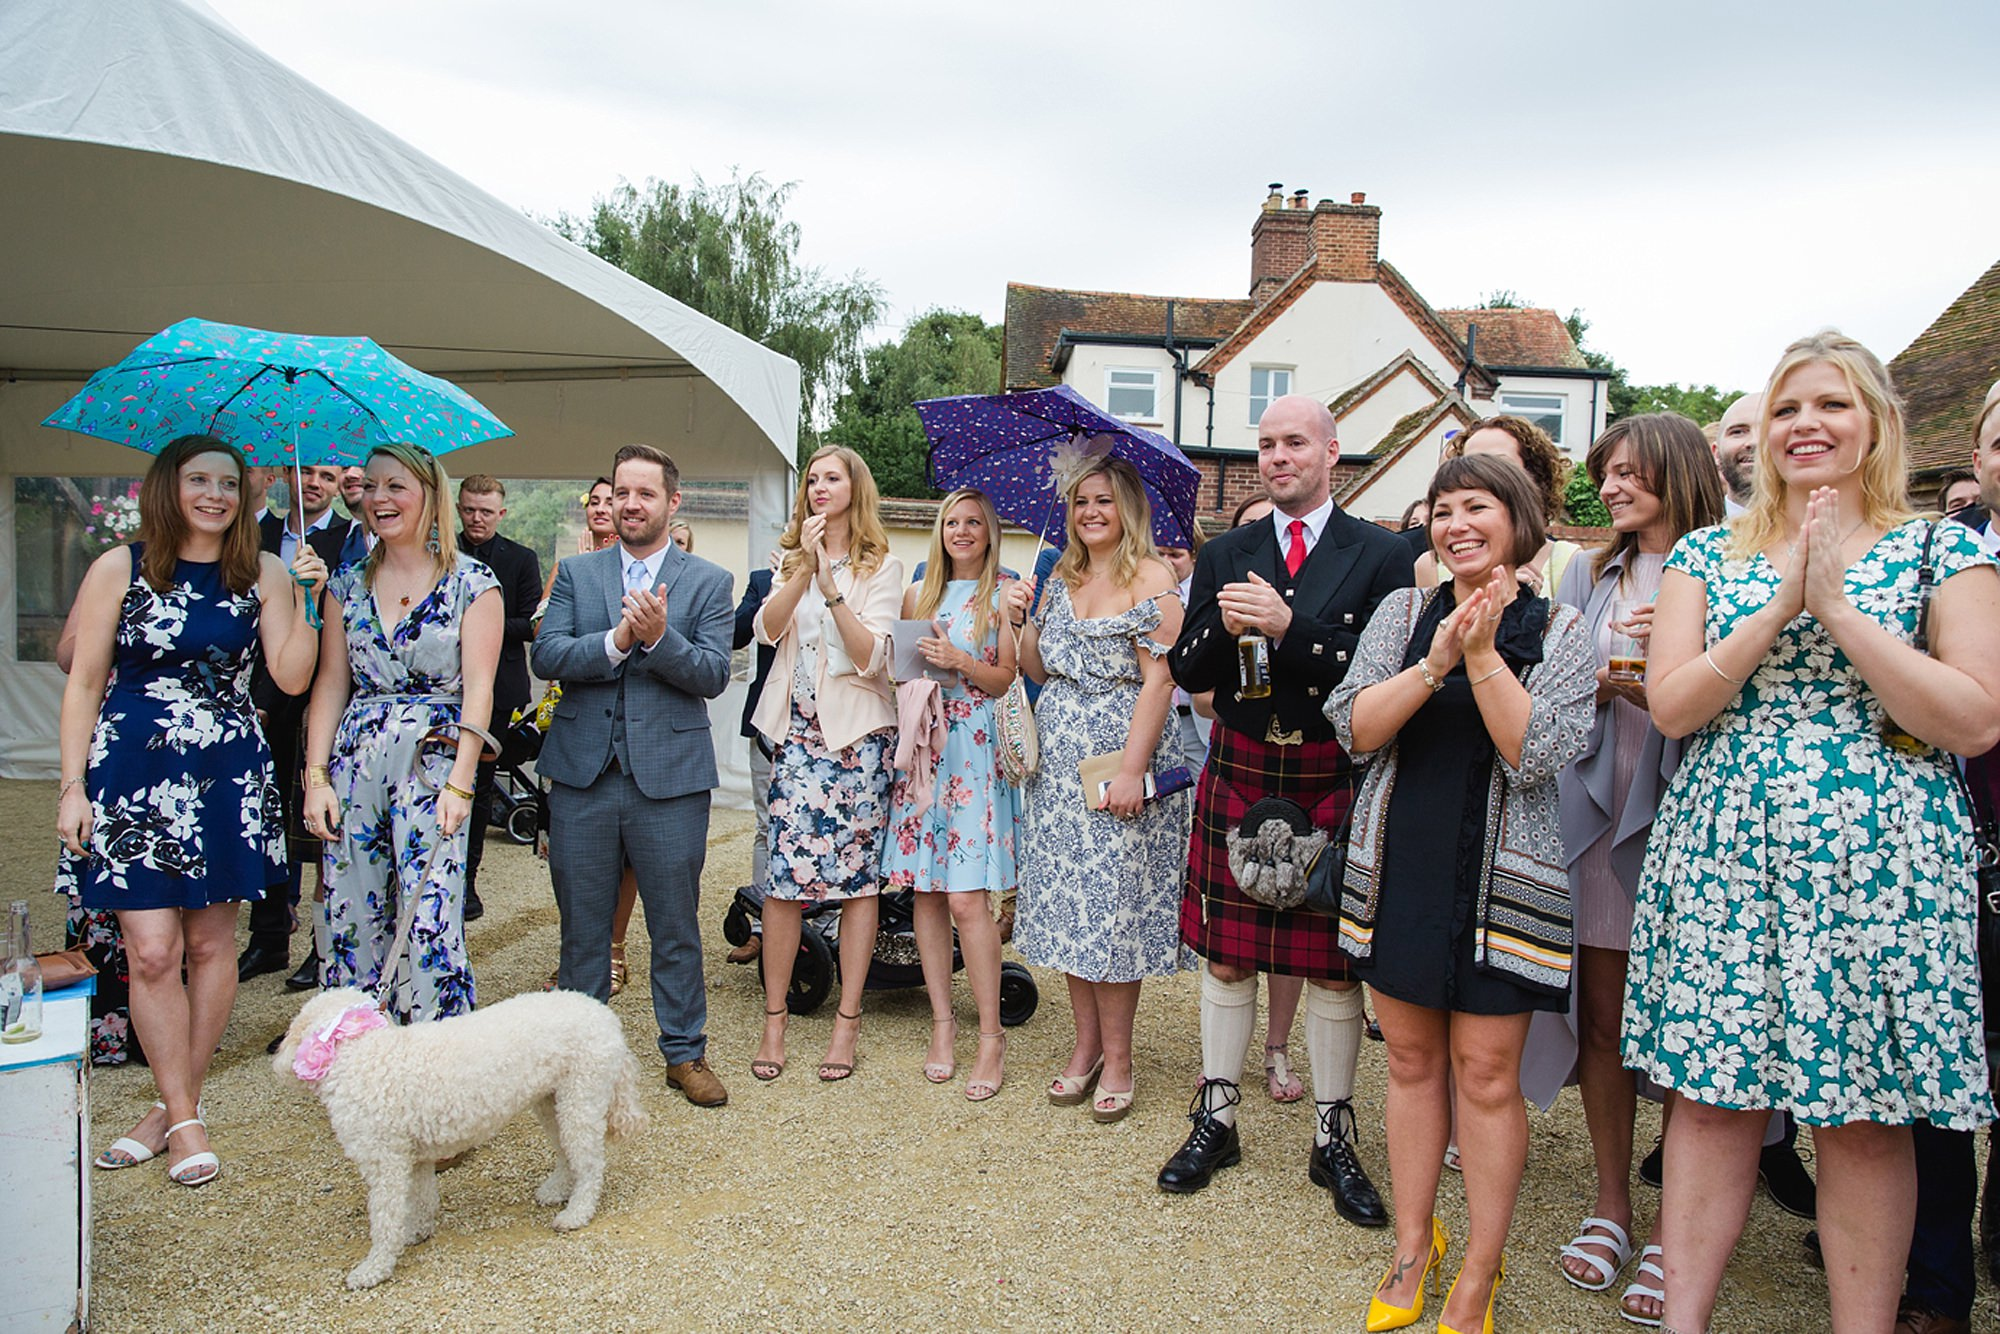 outdoor humanist wedding photography clapping wedding guests